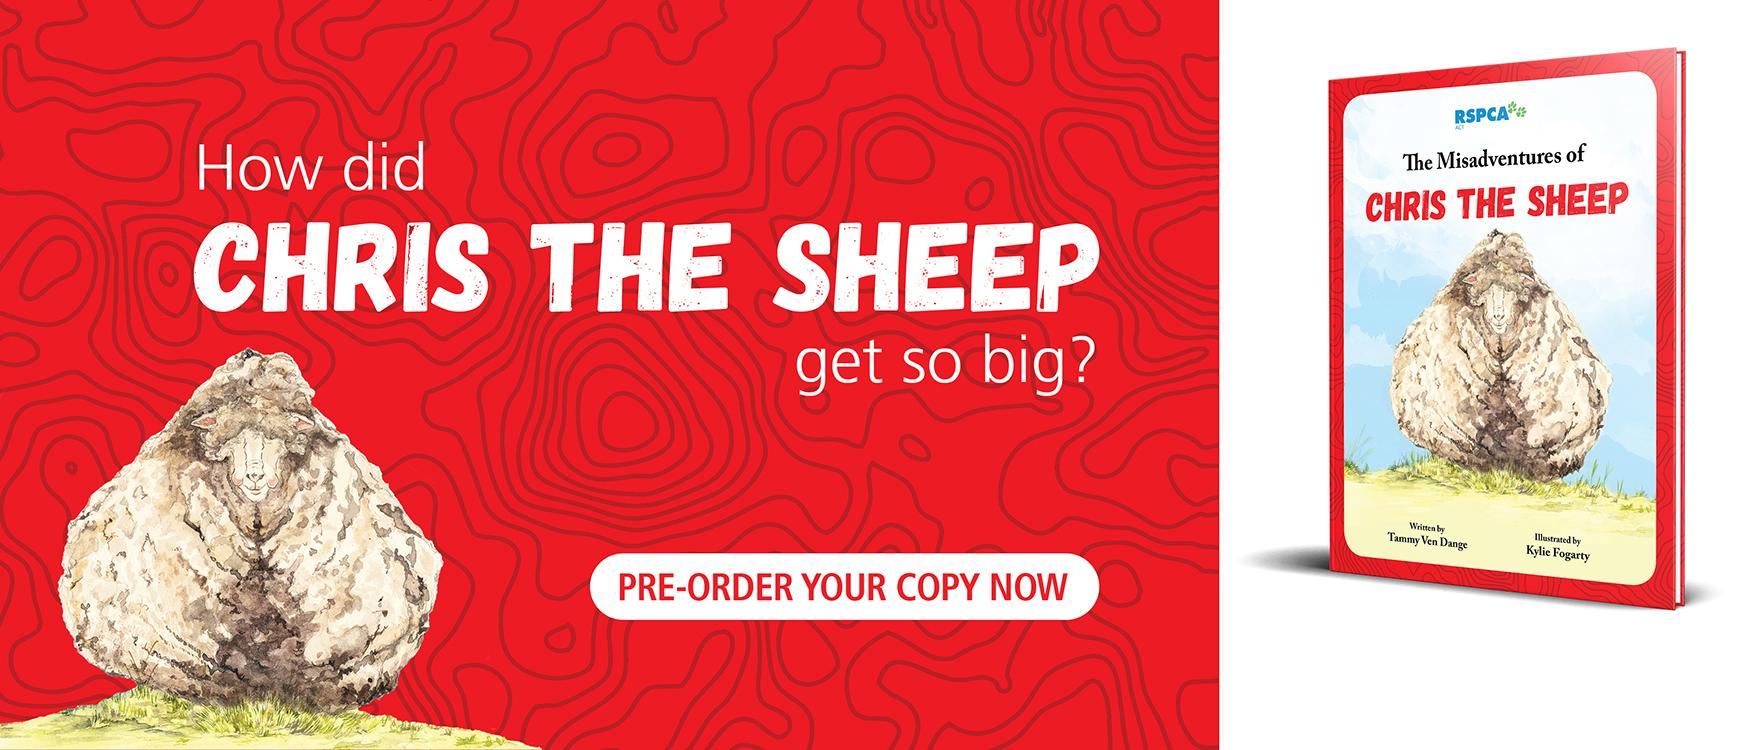 Pre-Order Your Copy of the Chris the Sheep Book.